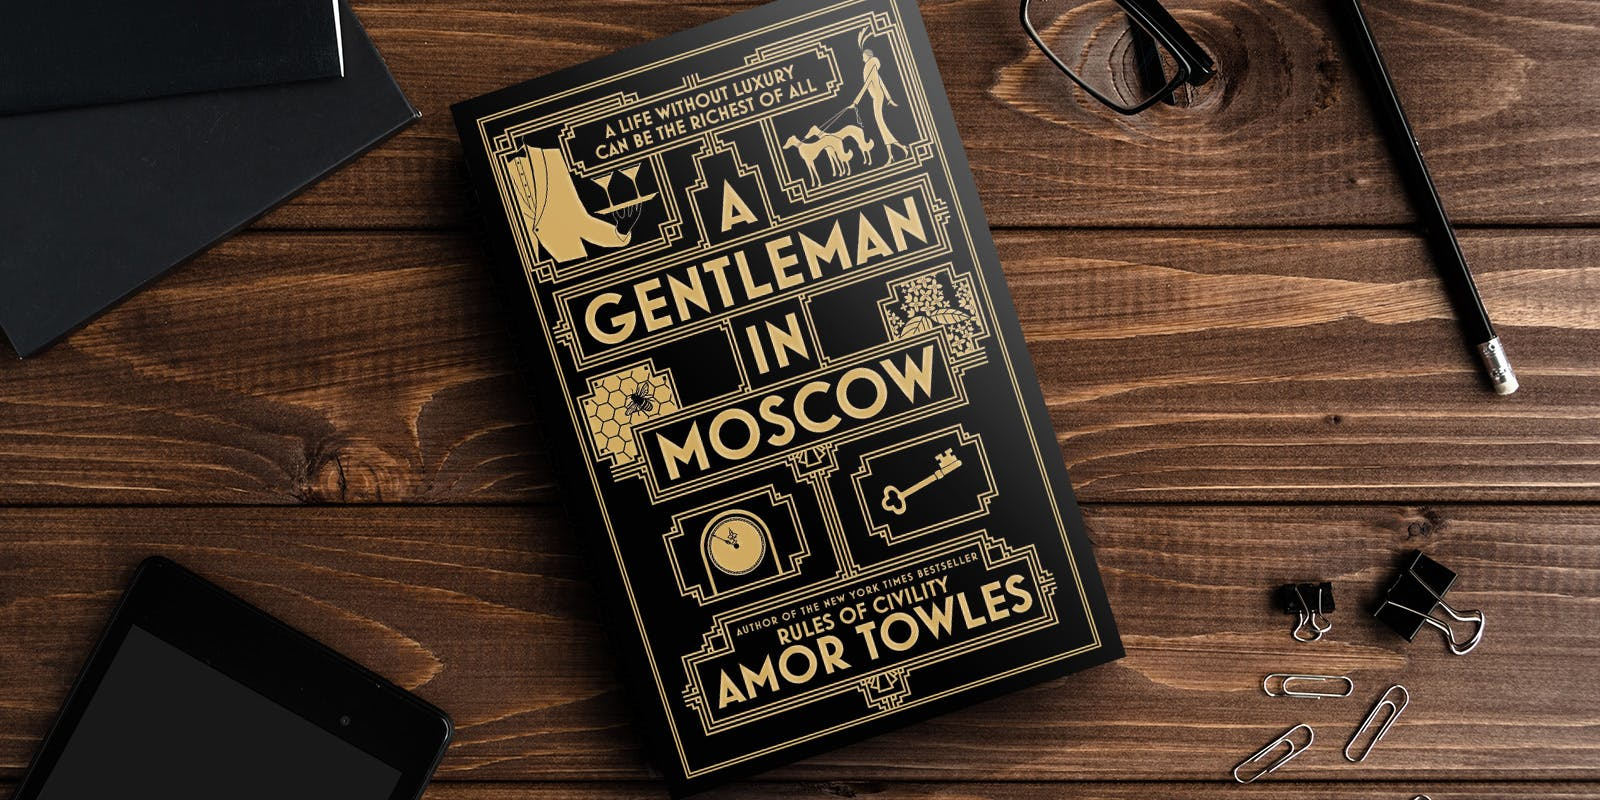 The 3 crucial lockdown lessons from A Gentleman in Moscow